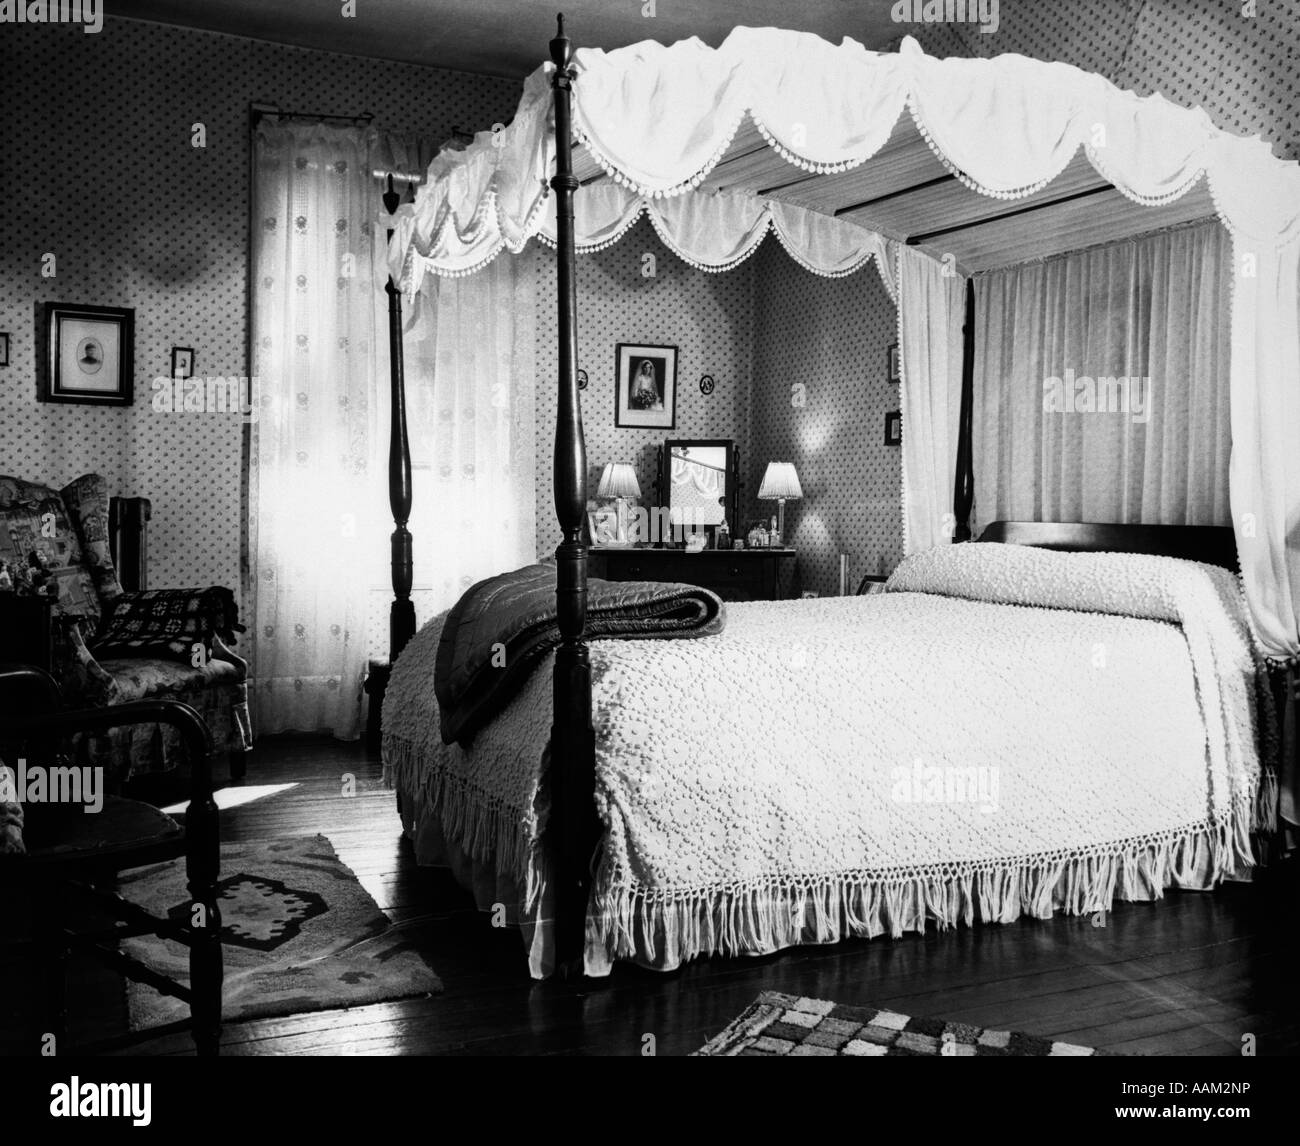 1940s Bedroom With Canopy Bed Chenille Bedspread Stock Photo Royalty Free Image 12657825 Alamy